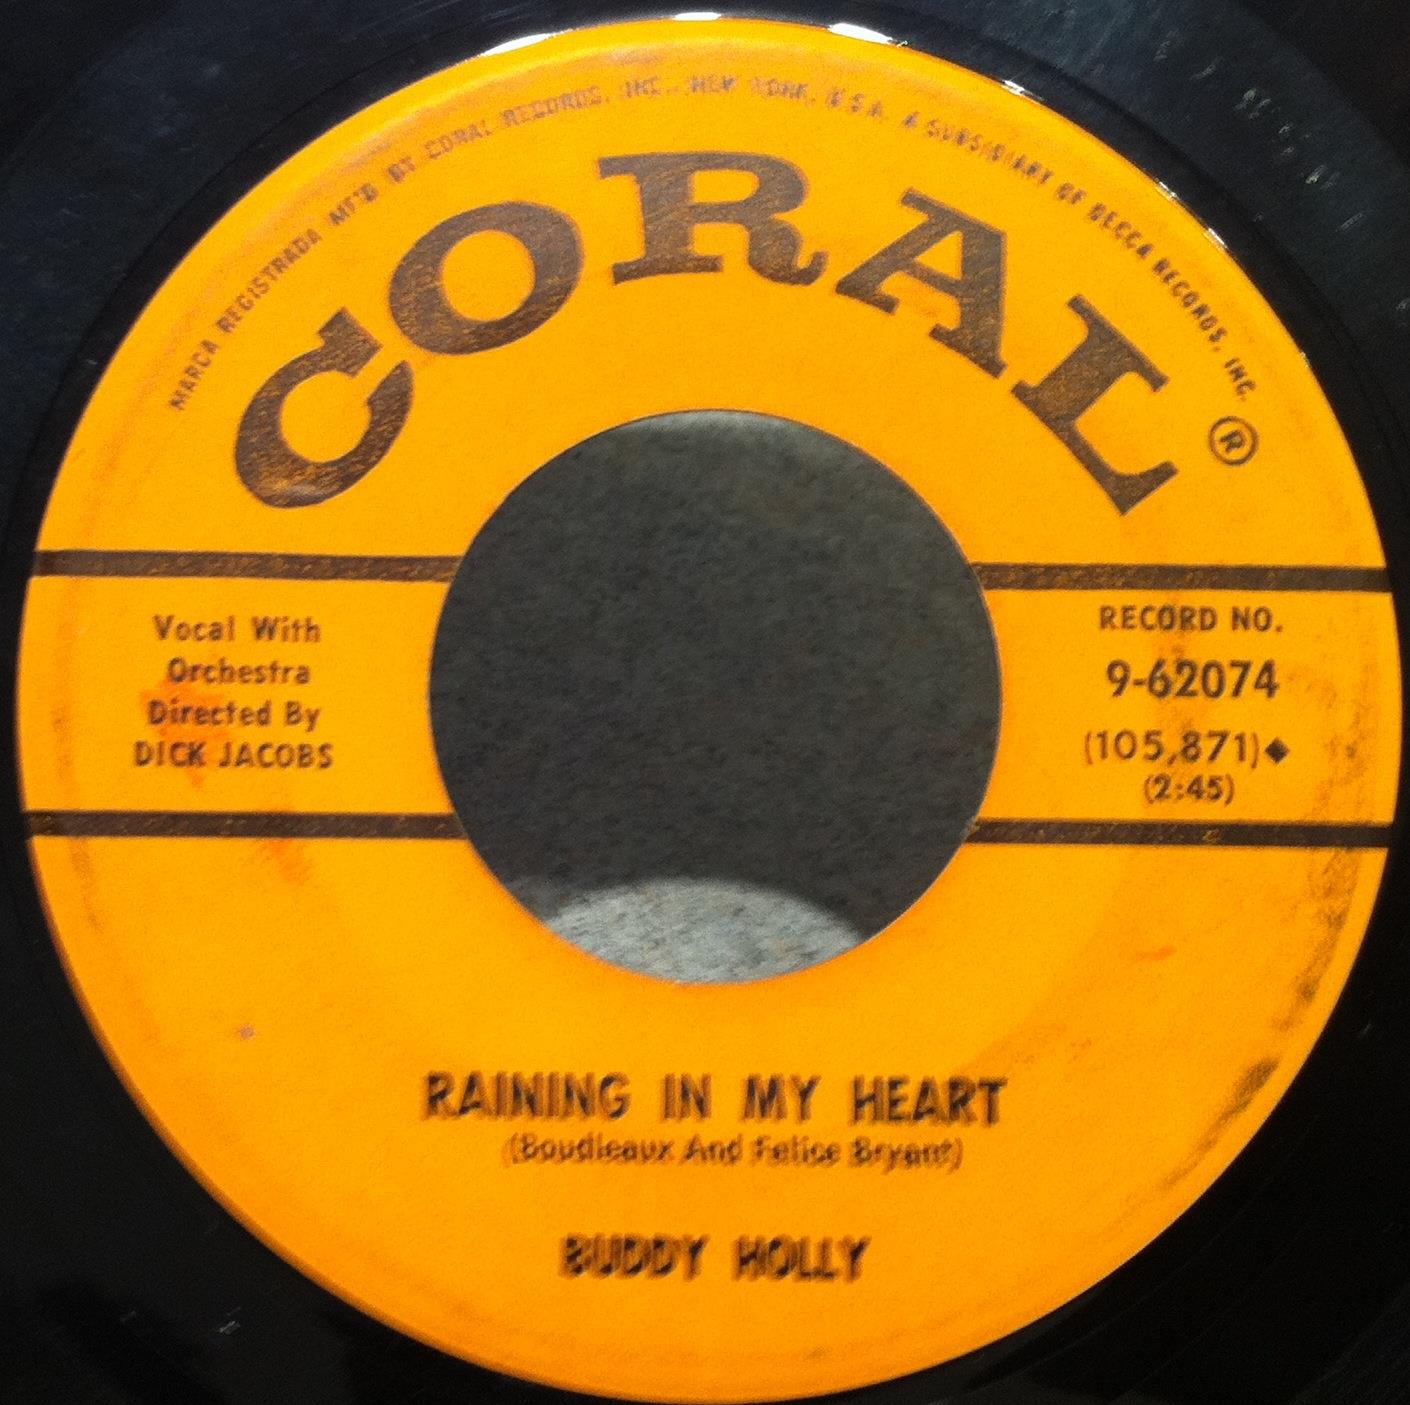 "BUDDY HOLLY - Buddy Holly It Doesn't Matter Anymore - Raining In My Heart 7"" Vg Coral 9 62074 (it Doesn't Mat"